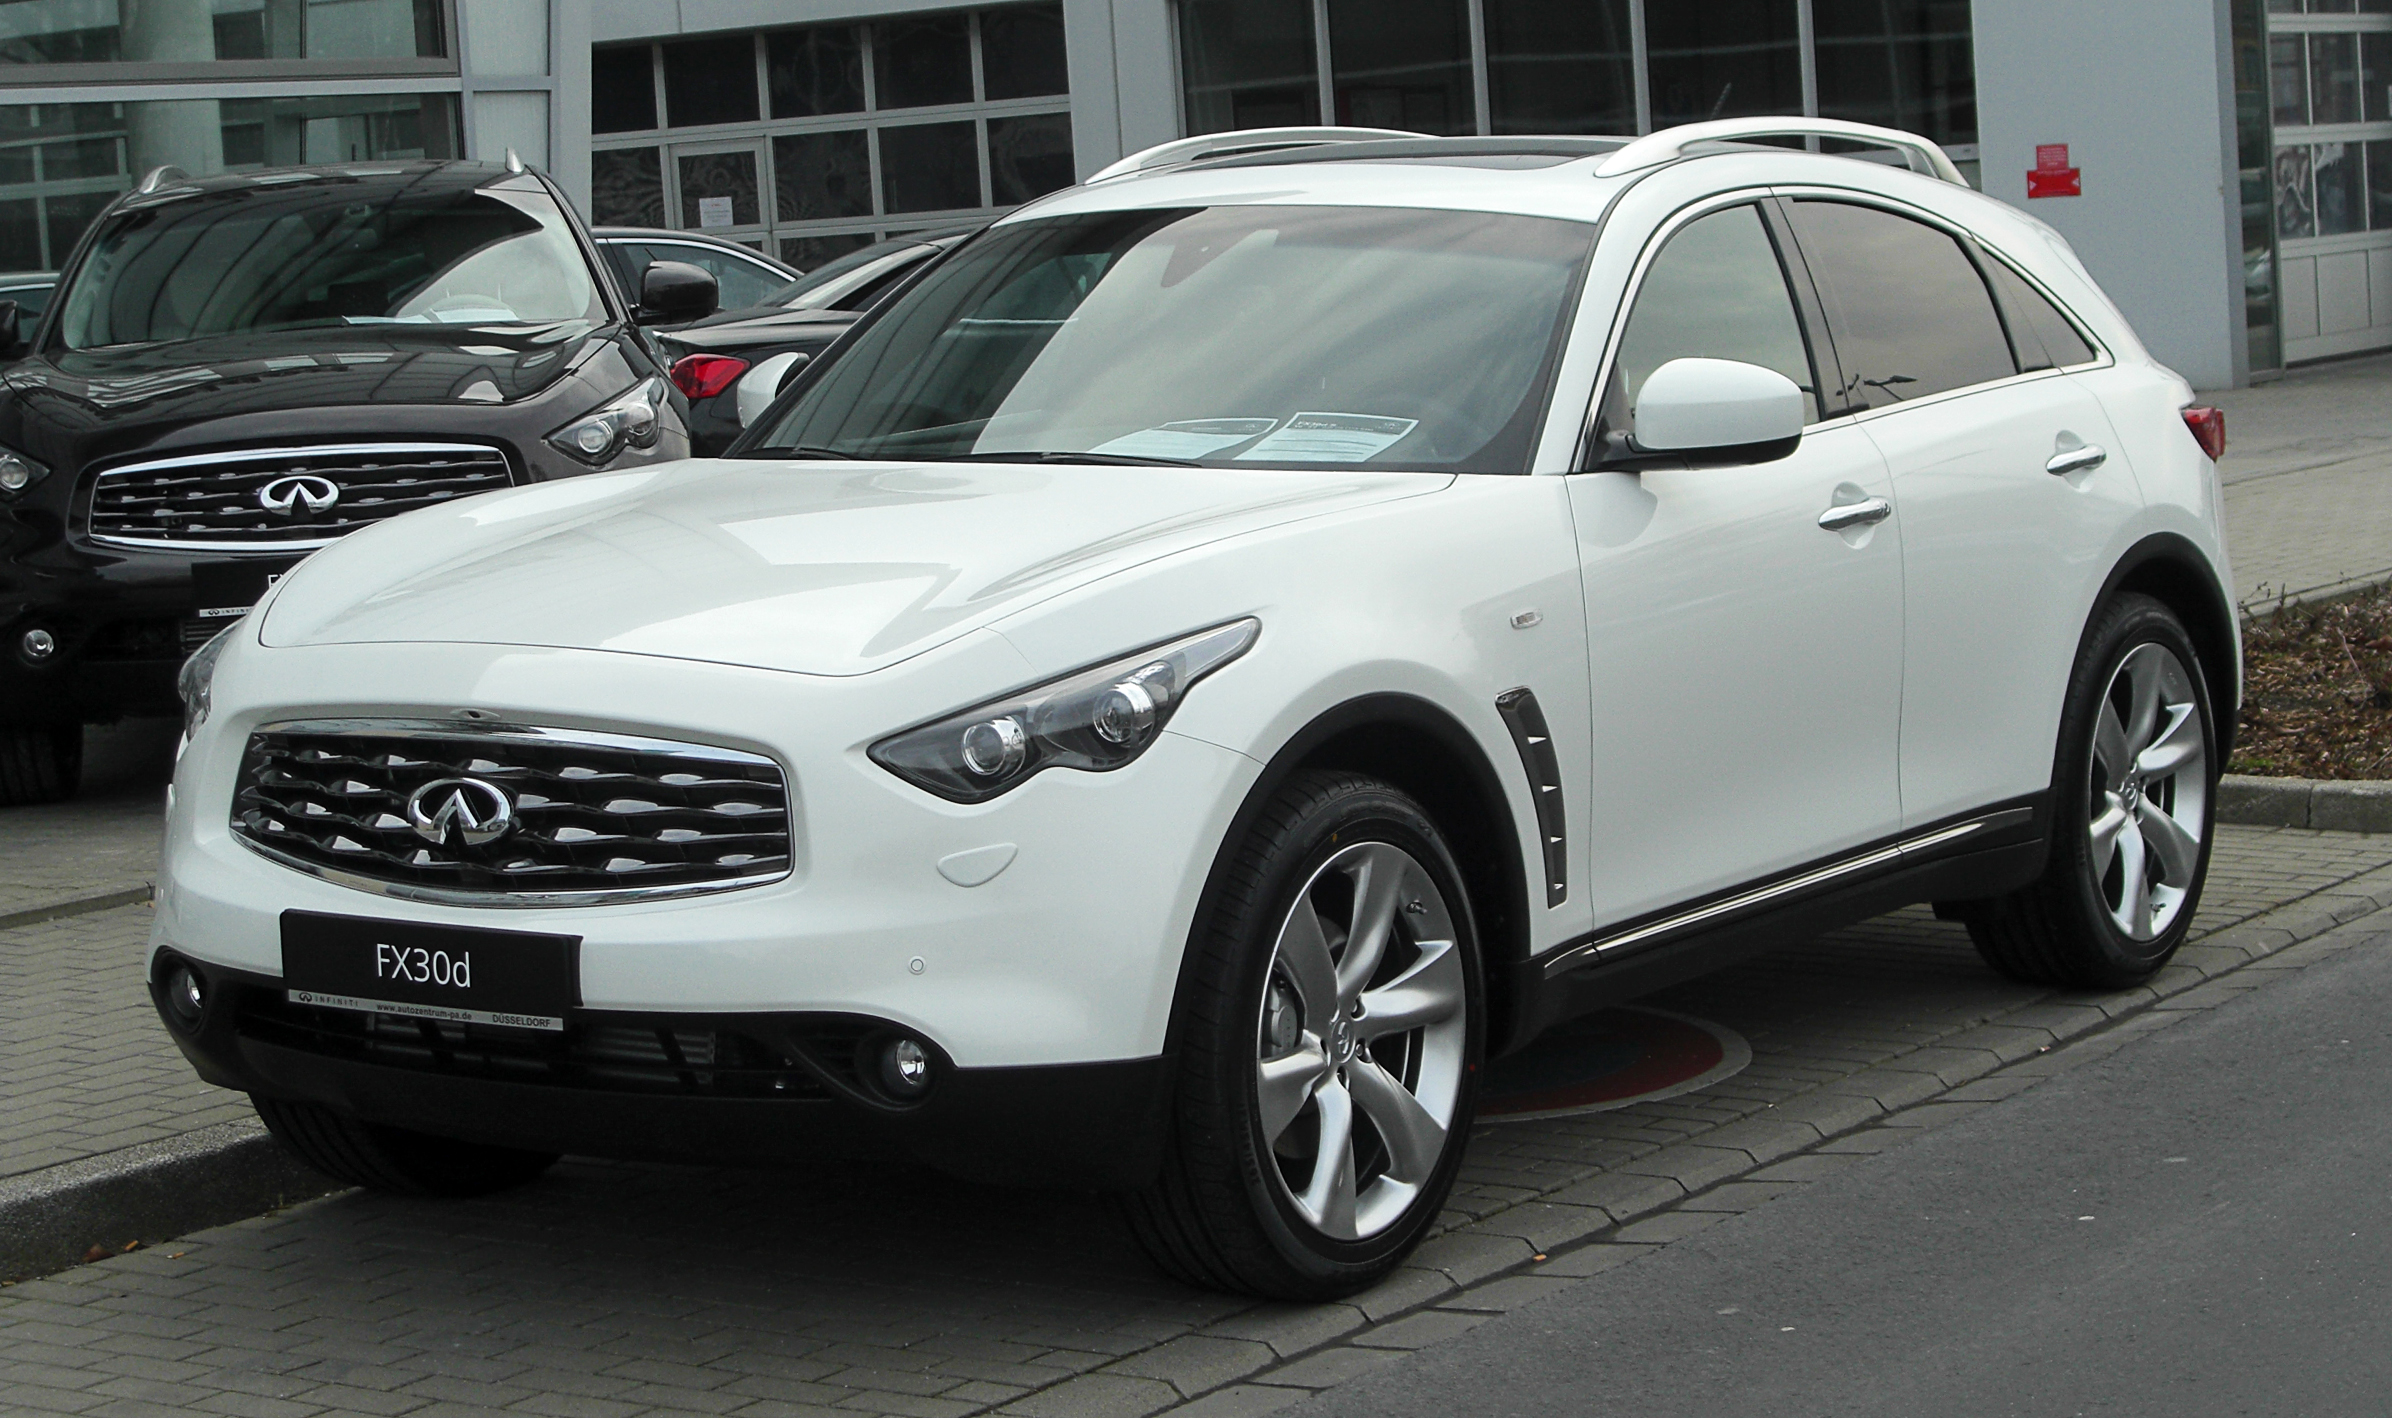 Market For A High Performance Qx70 Infiniti Qx70 Forum